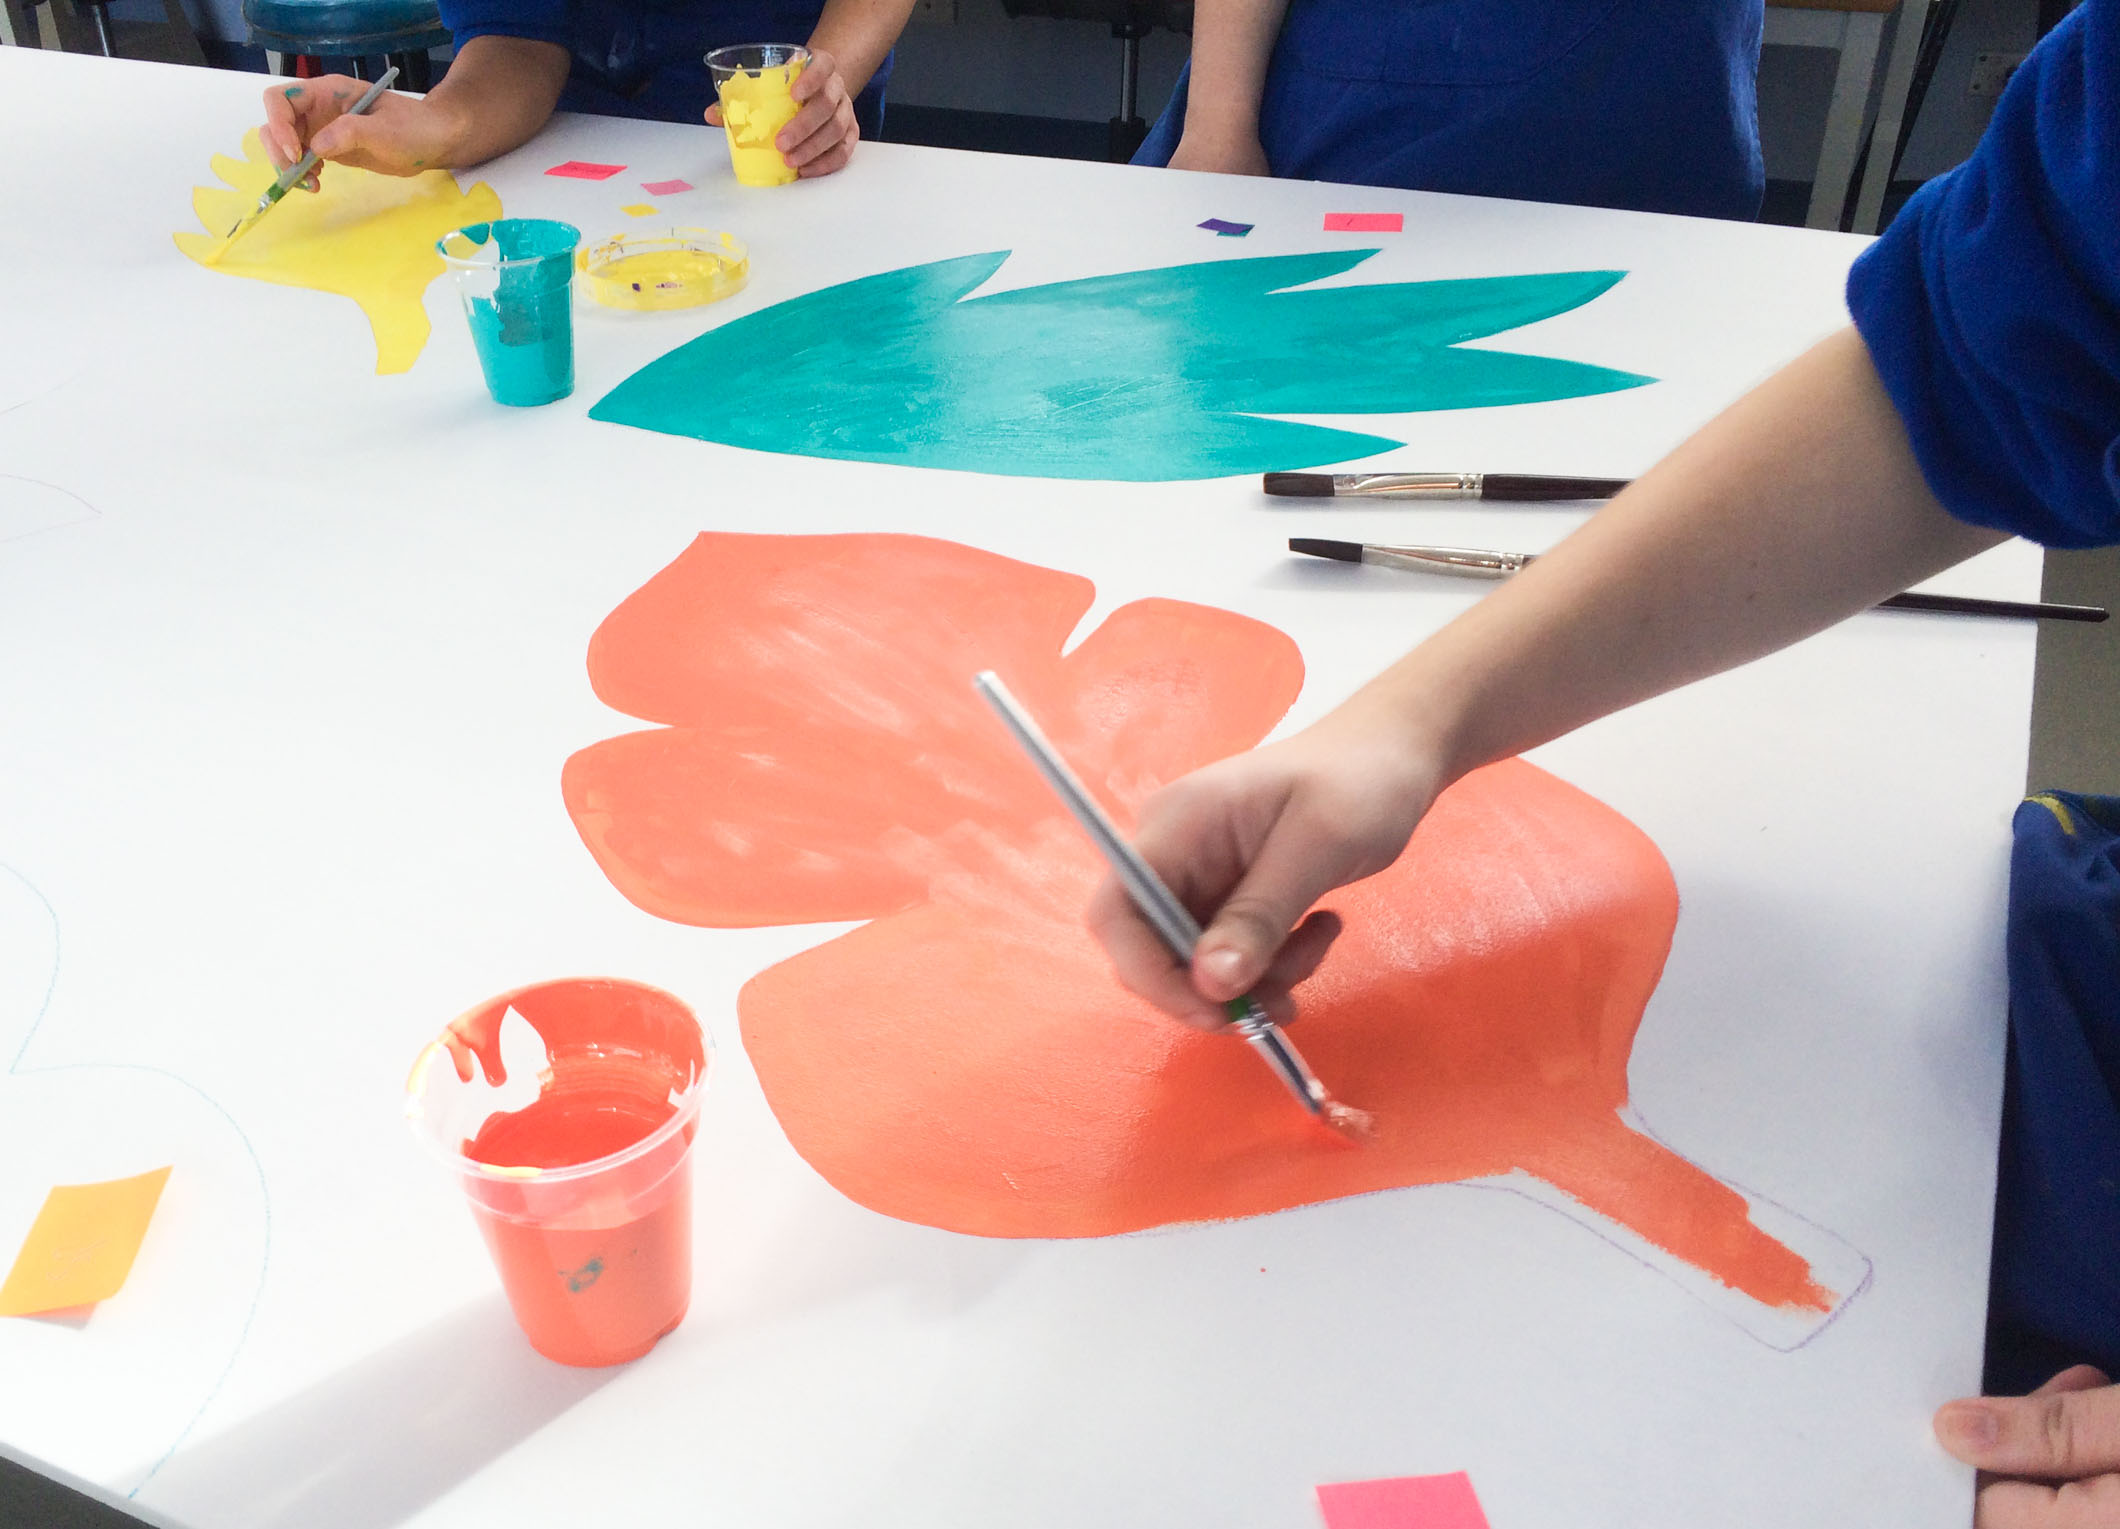 Students assisting in the painting of mural